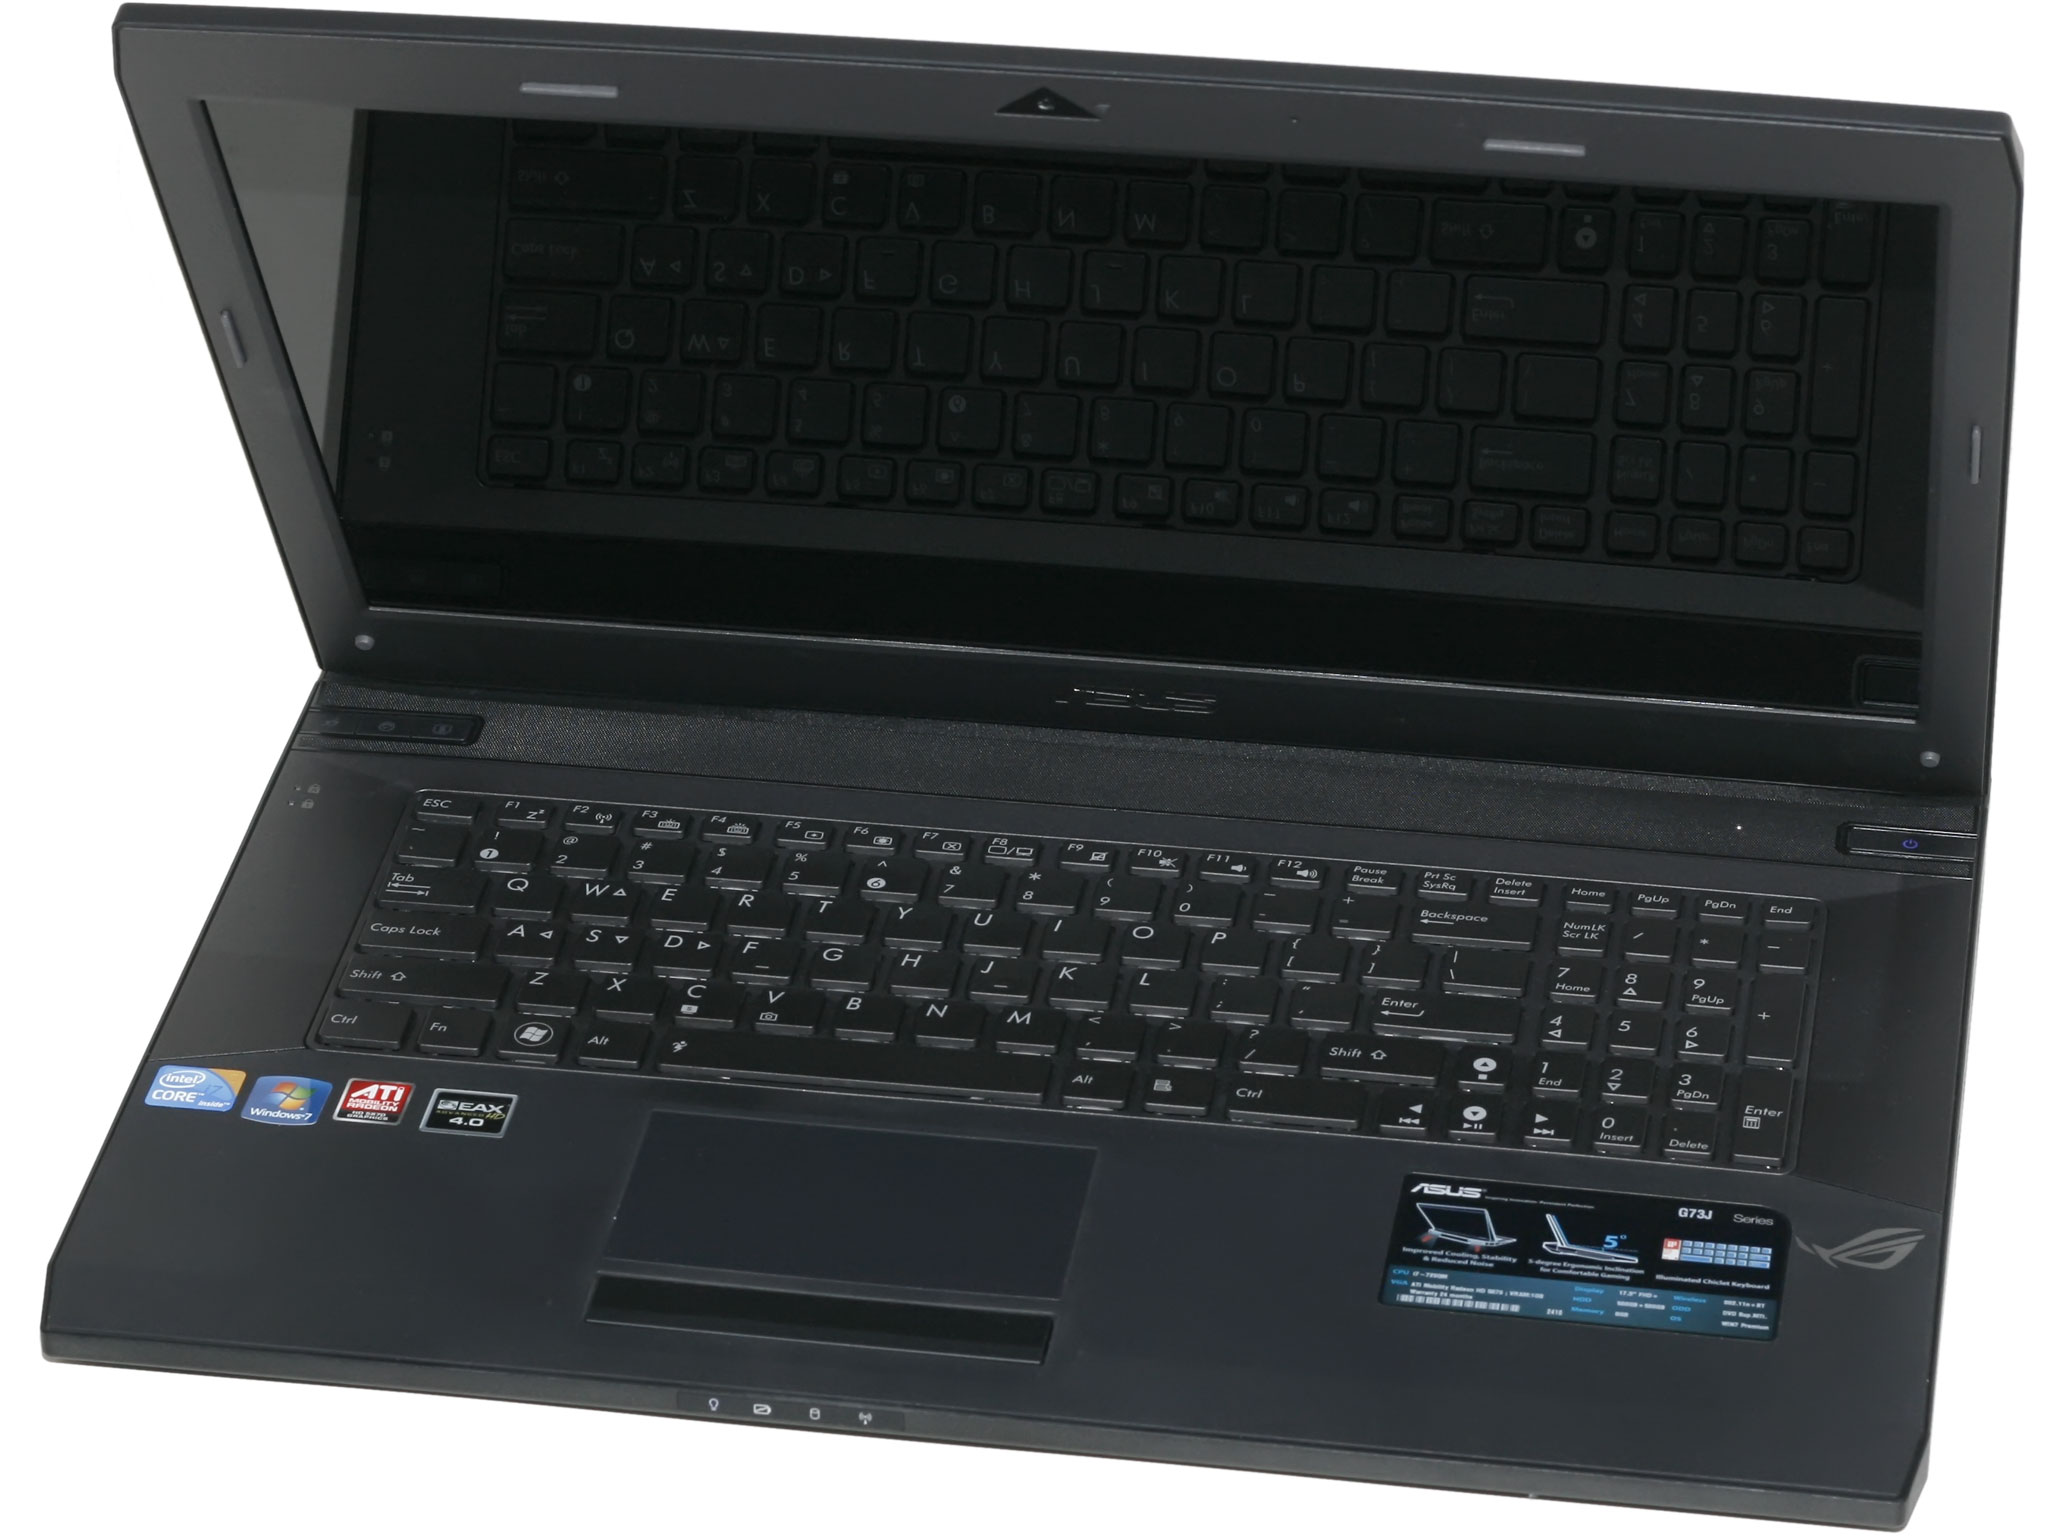 ASUS G73SW NOTEBOOK TURBO BOOST MONITOR WINDOWS 7 64 DRIVER